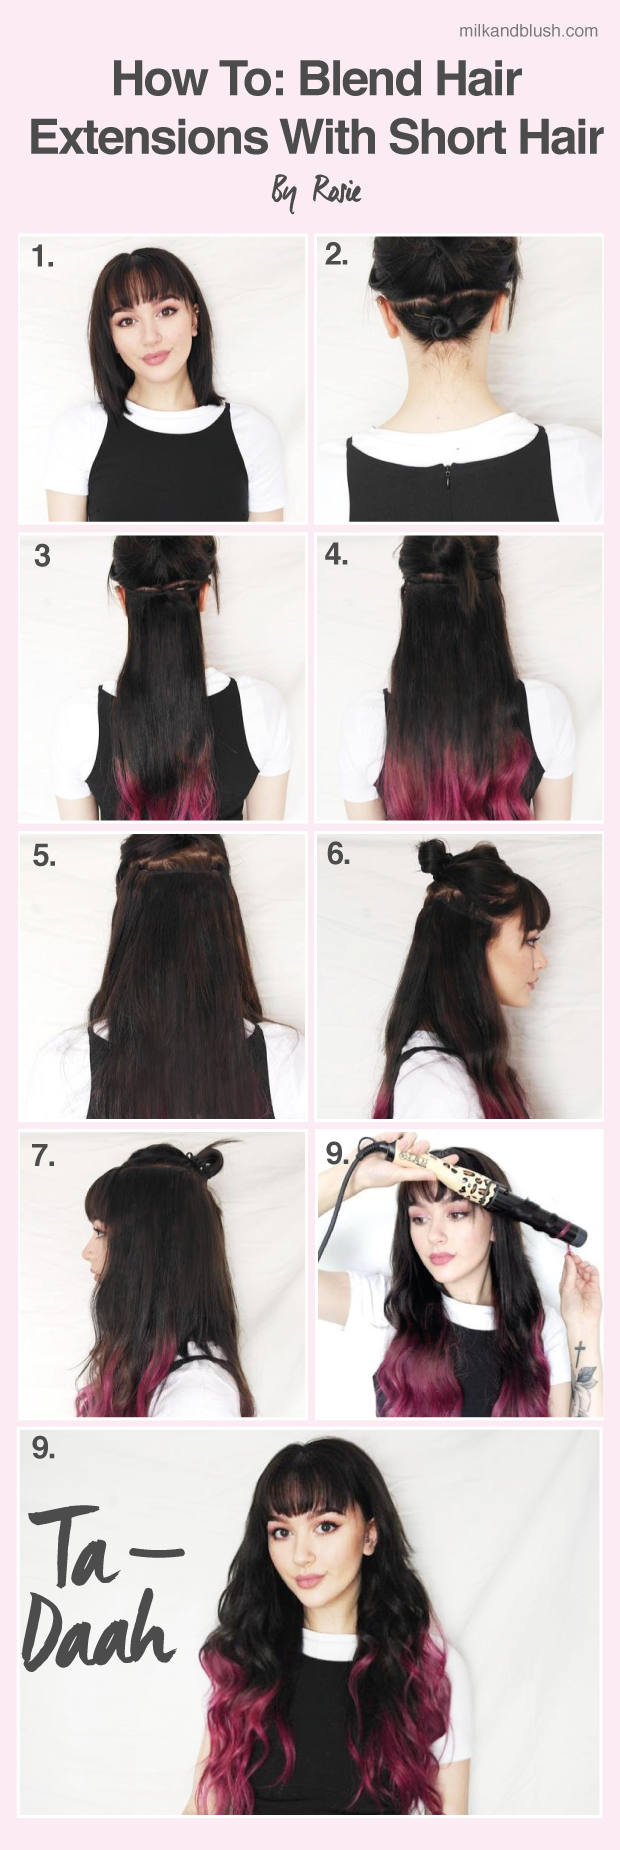 How To Blend Hair Extensions With Short Hair By Rosie